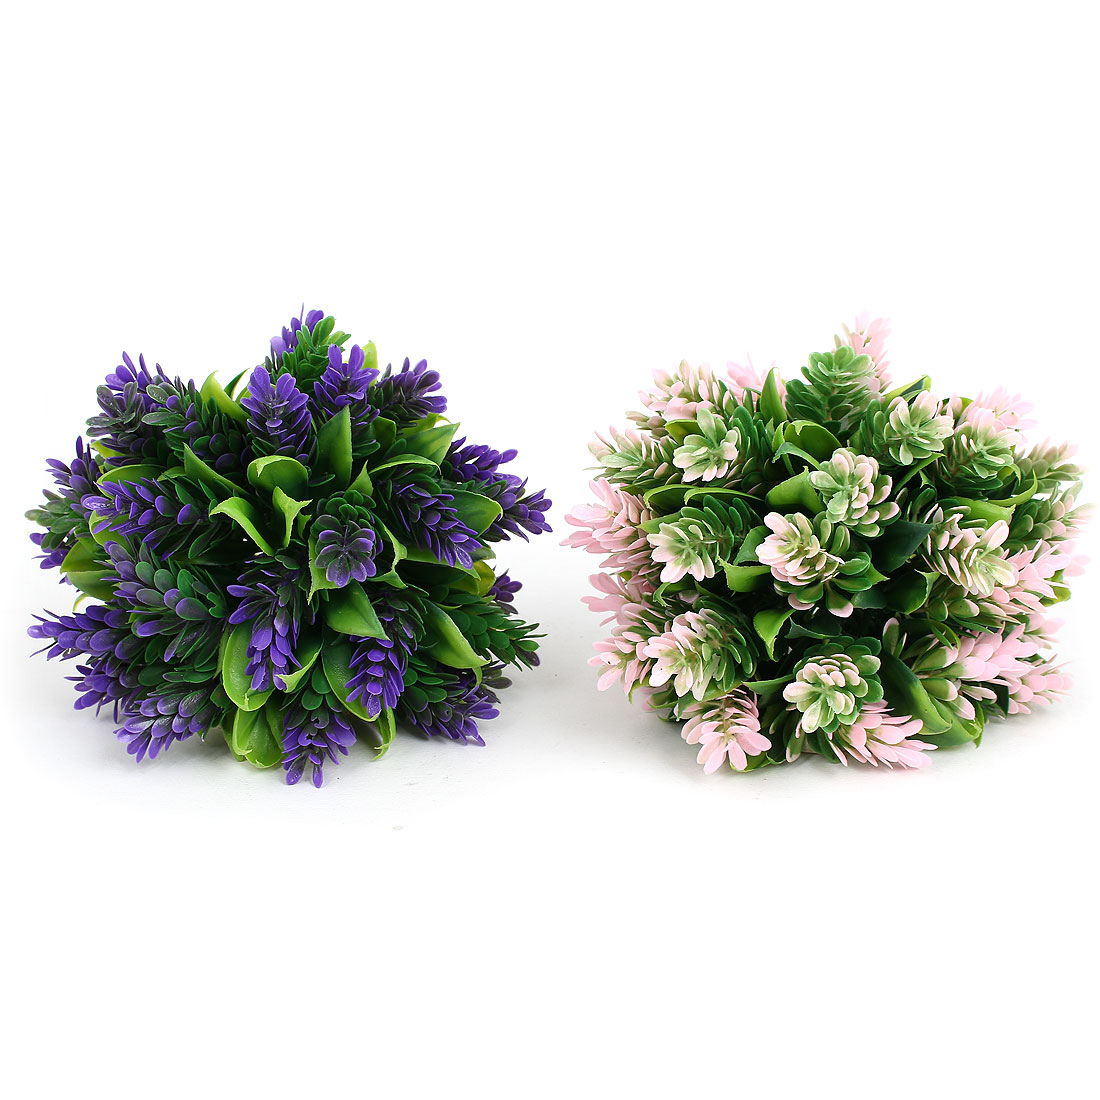 Aquarium Fish Tank Simulation Artificial Floral Plant Ornament 2 Pcs Mixed Color